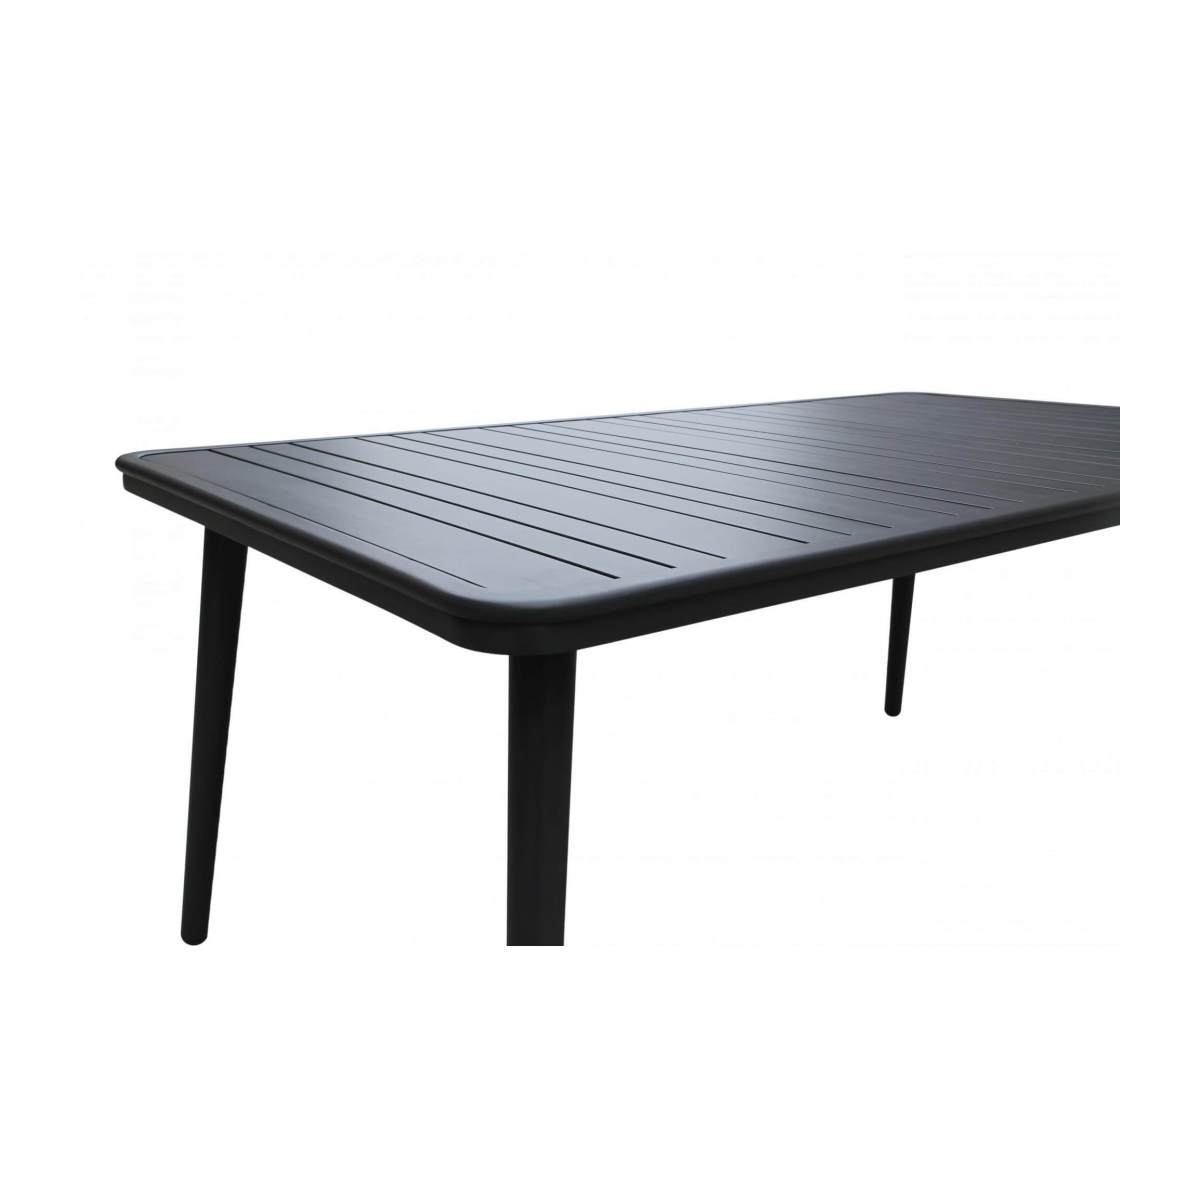 Table de jardin en aluminium - Anthracite poudré n°5